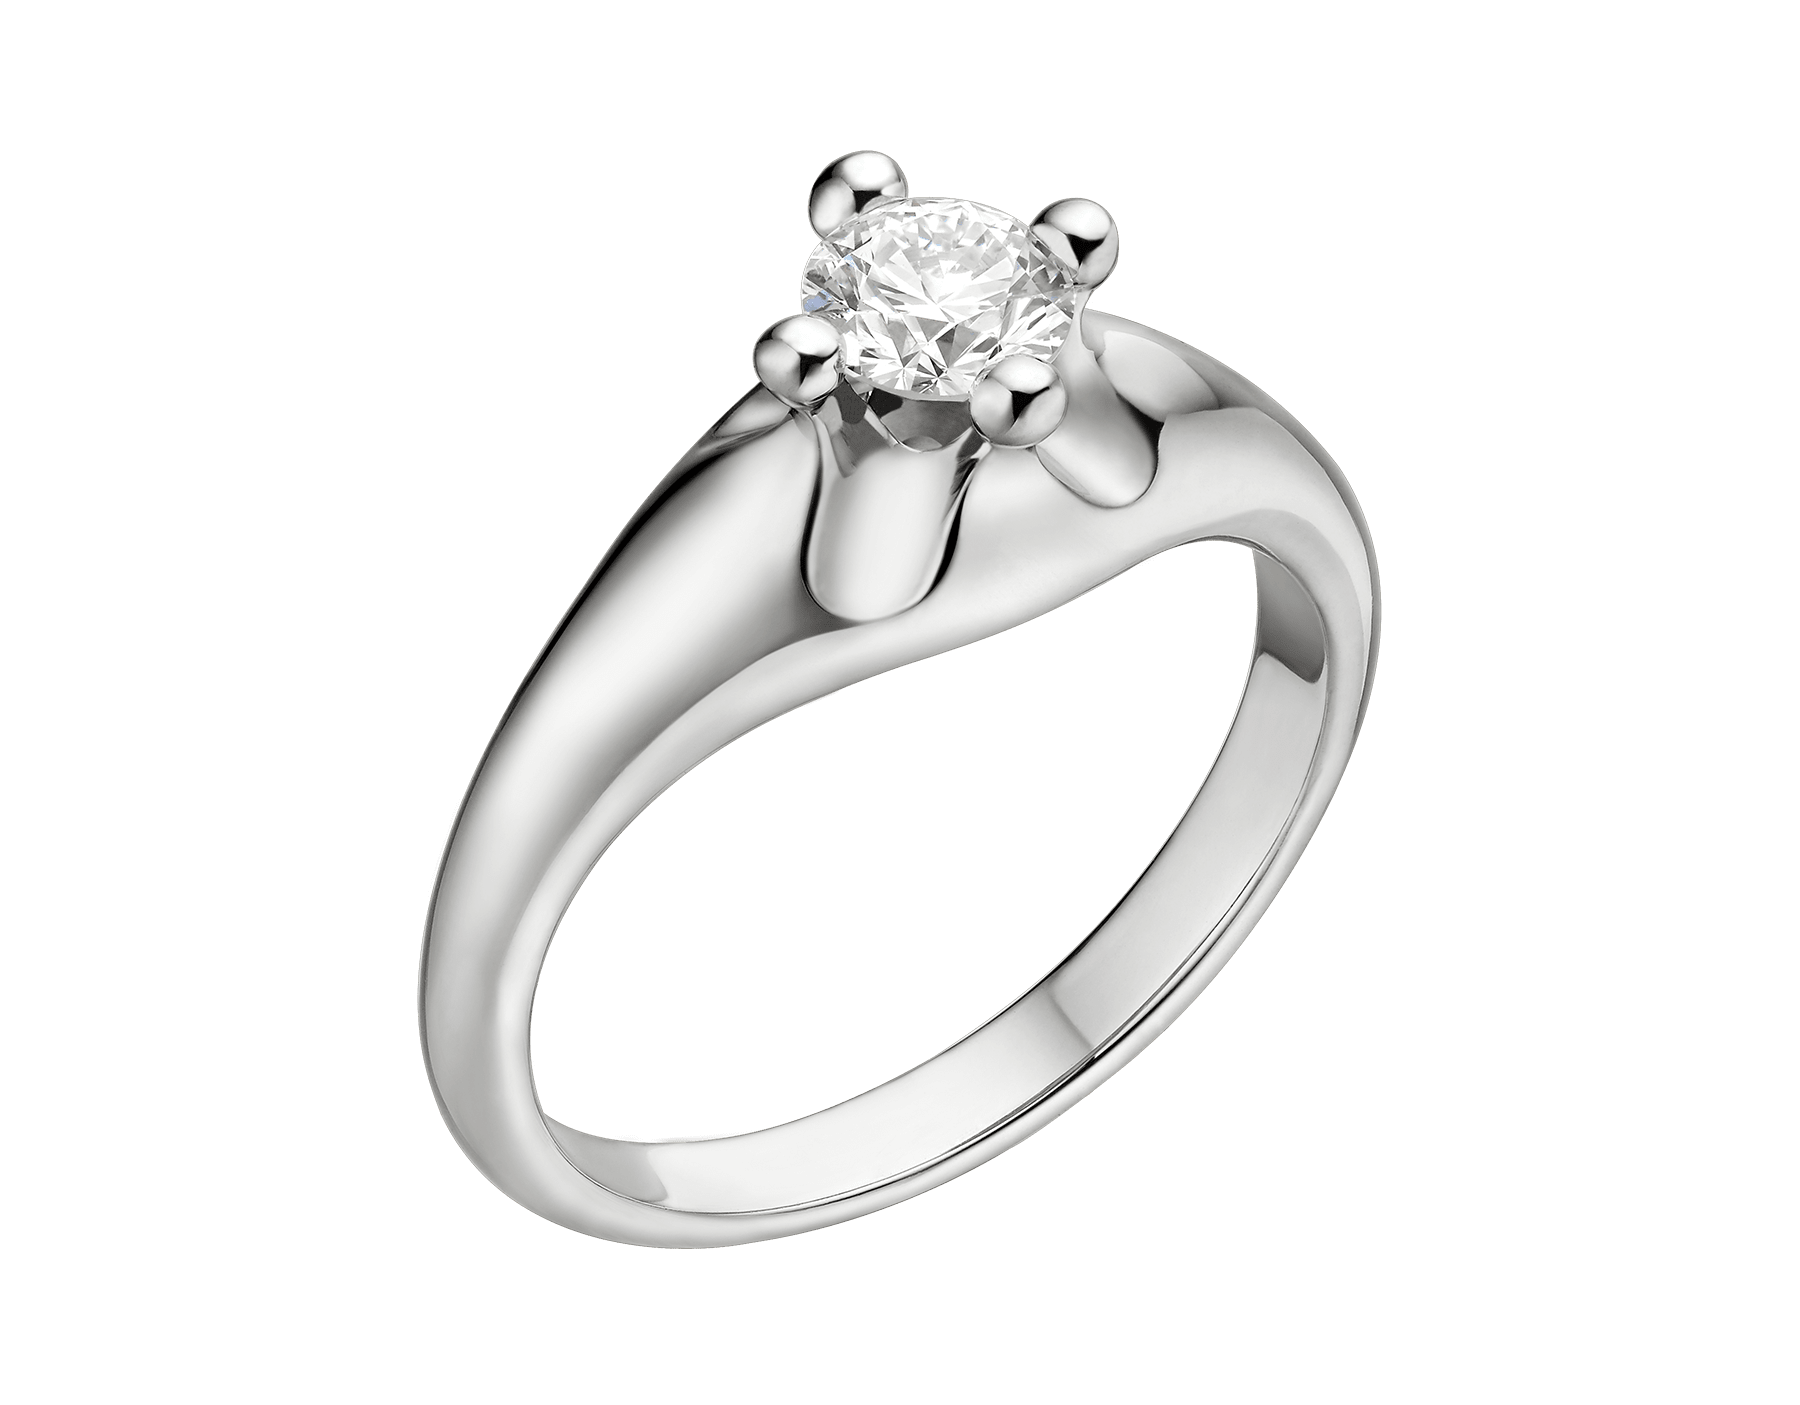 Corona solitaire ring in platinum with round brilliant cut diamond. Available from 0.30 ct. Inspired by the crown and the flower, two enduring symbols of glory and celebration since ancient times. 327918 image 2